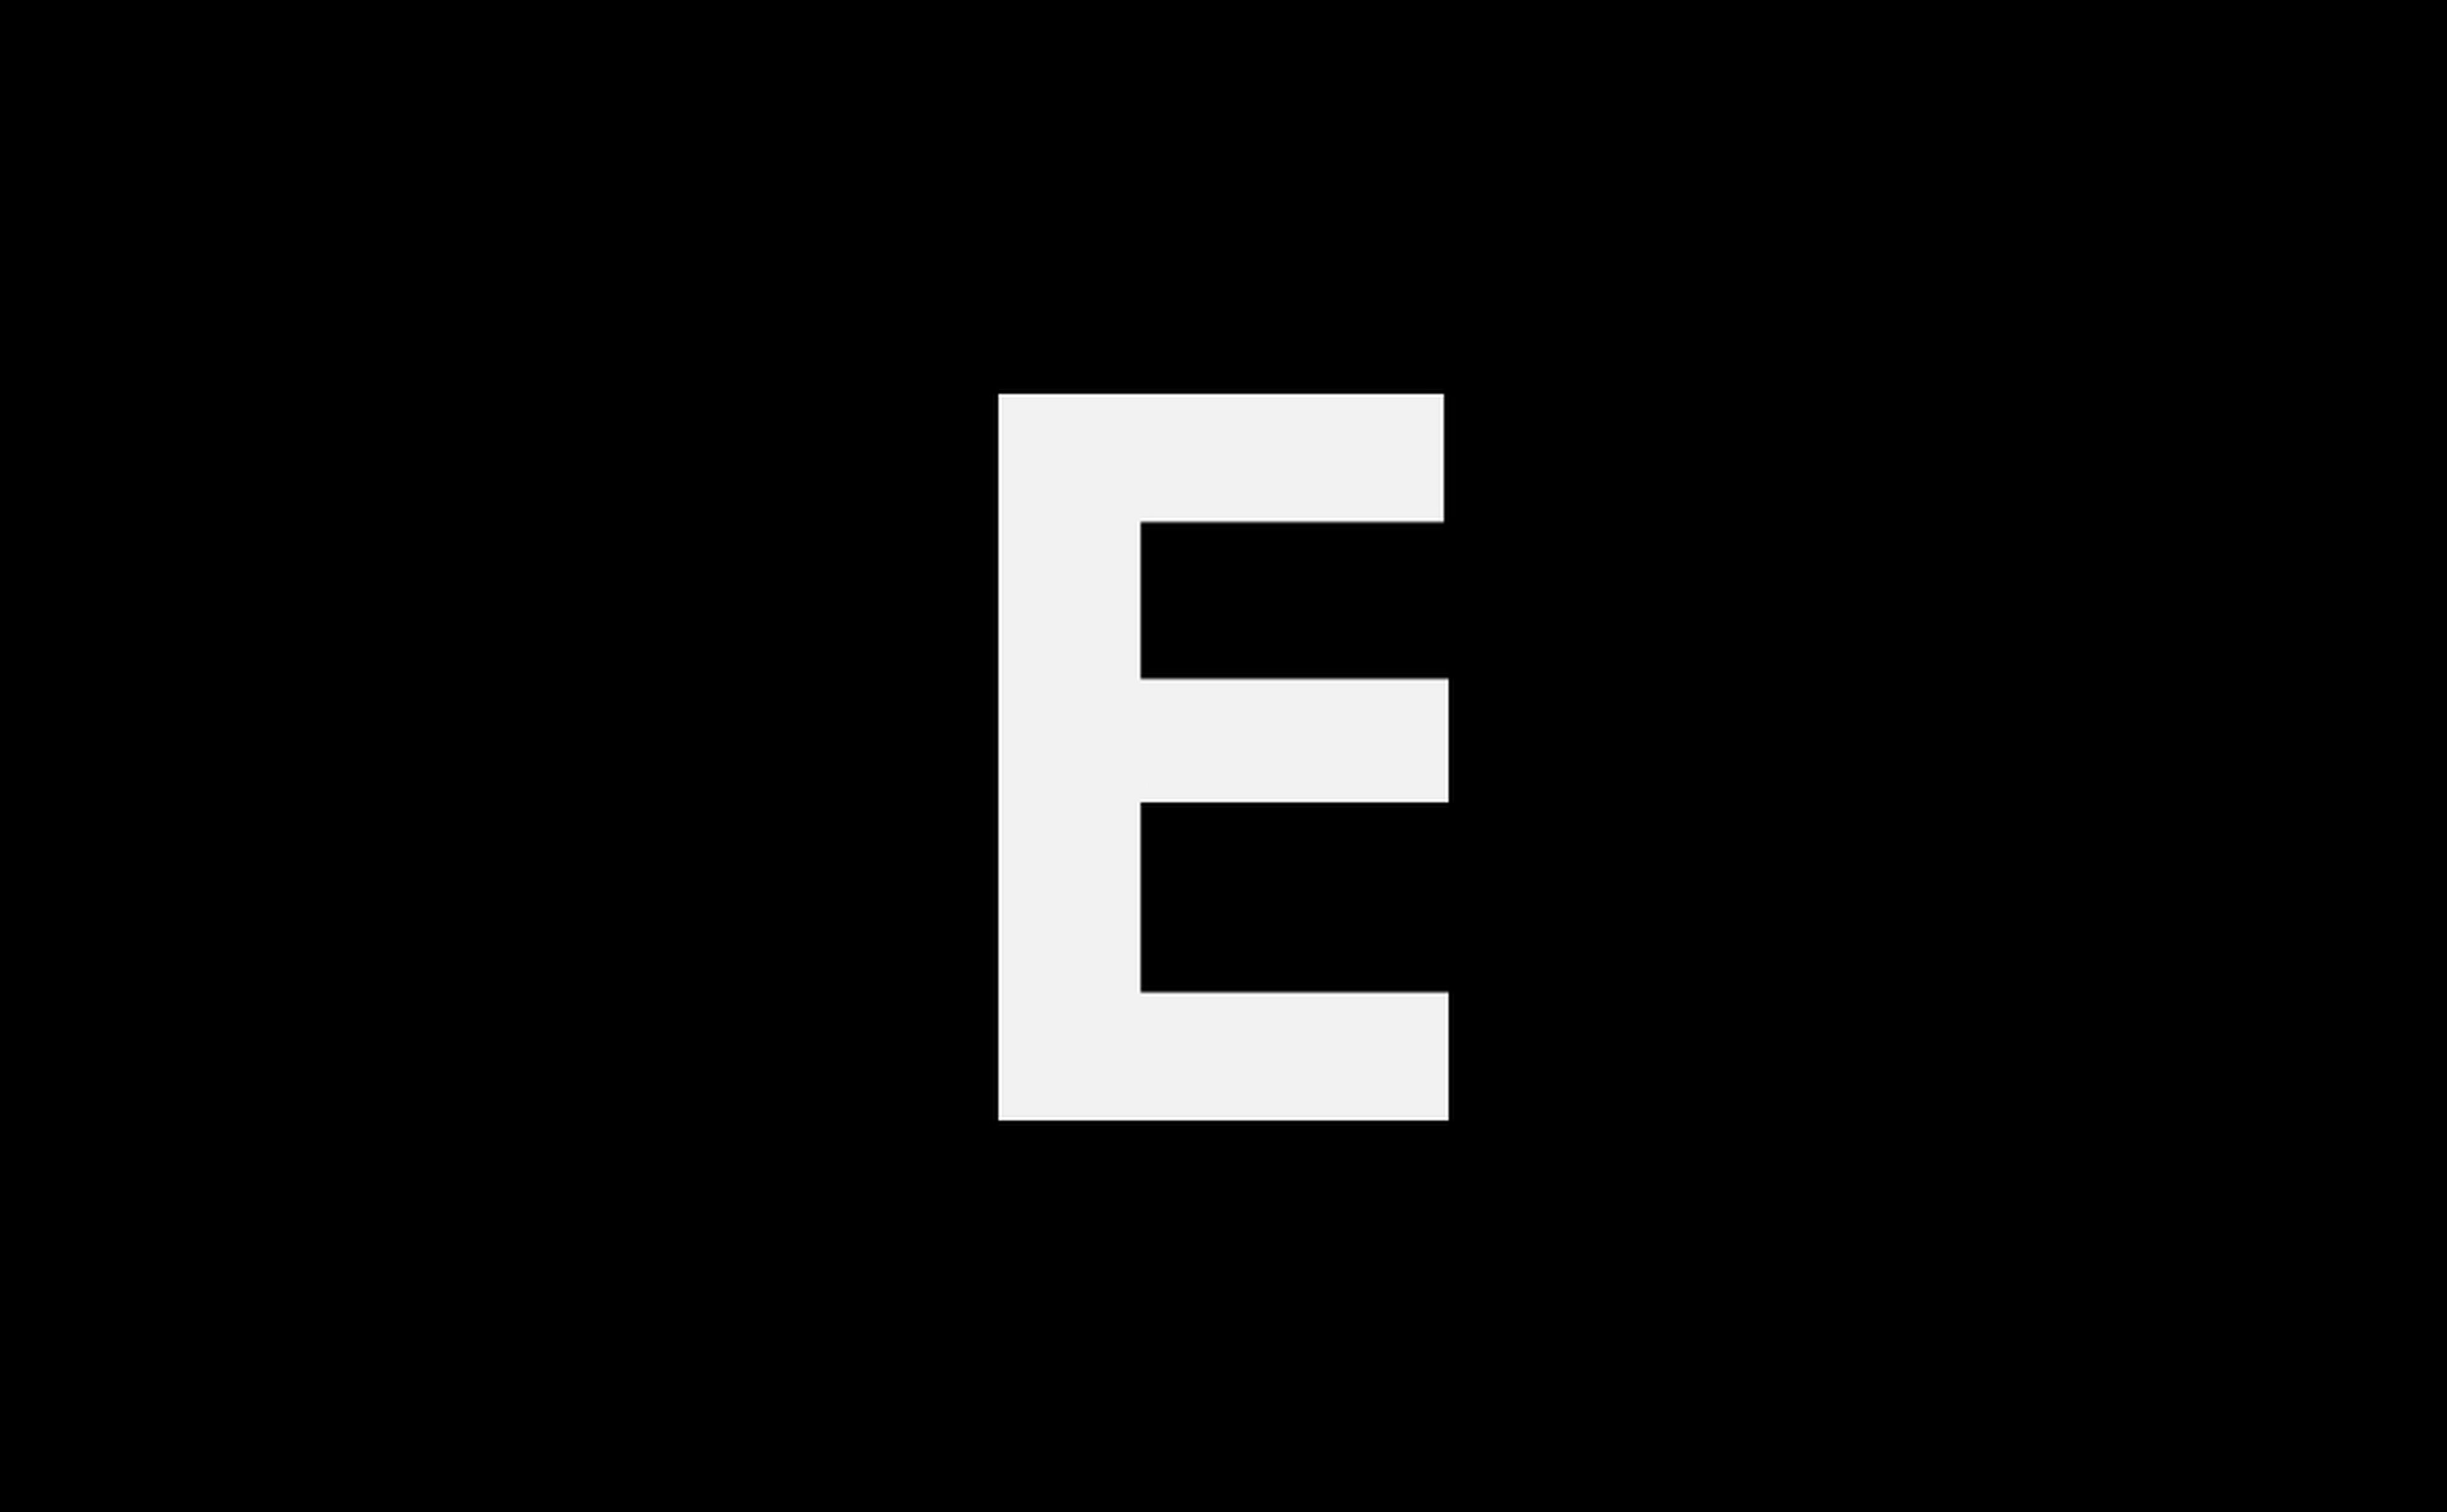 flower, person, portrait, focus on foreground, looking at camera, freshness, lifestyles, fragility, front view, headshot, close-up, smiling, leisure activity, young adult, park - man made space, growth, nature, casual clothing